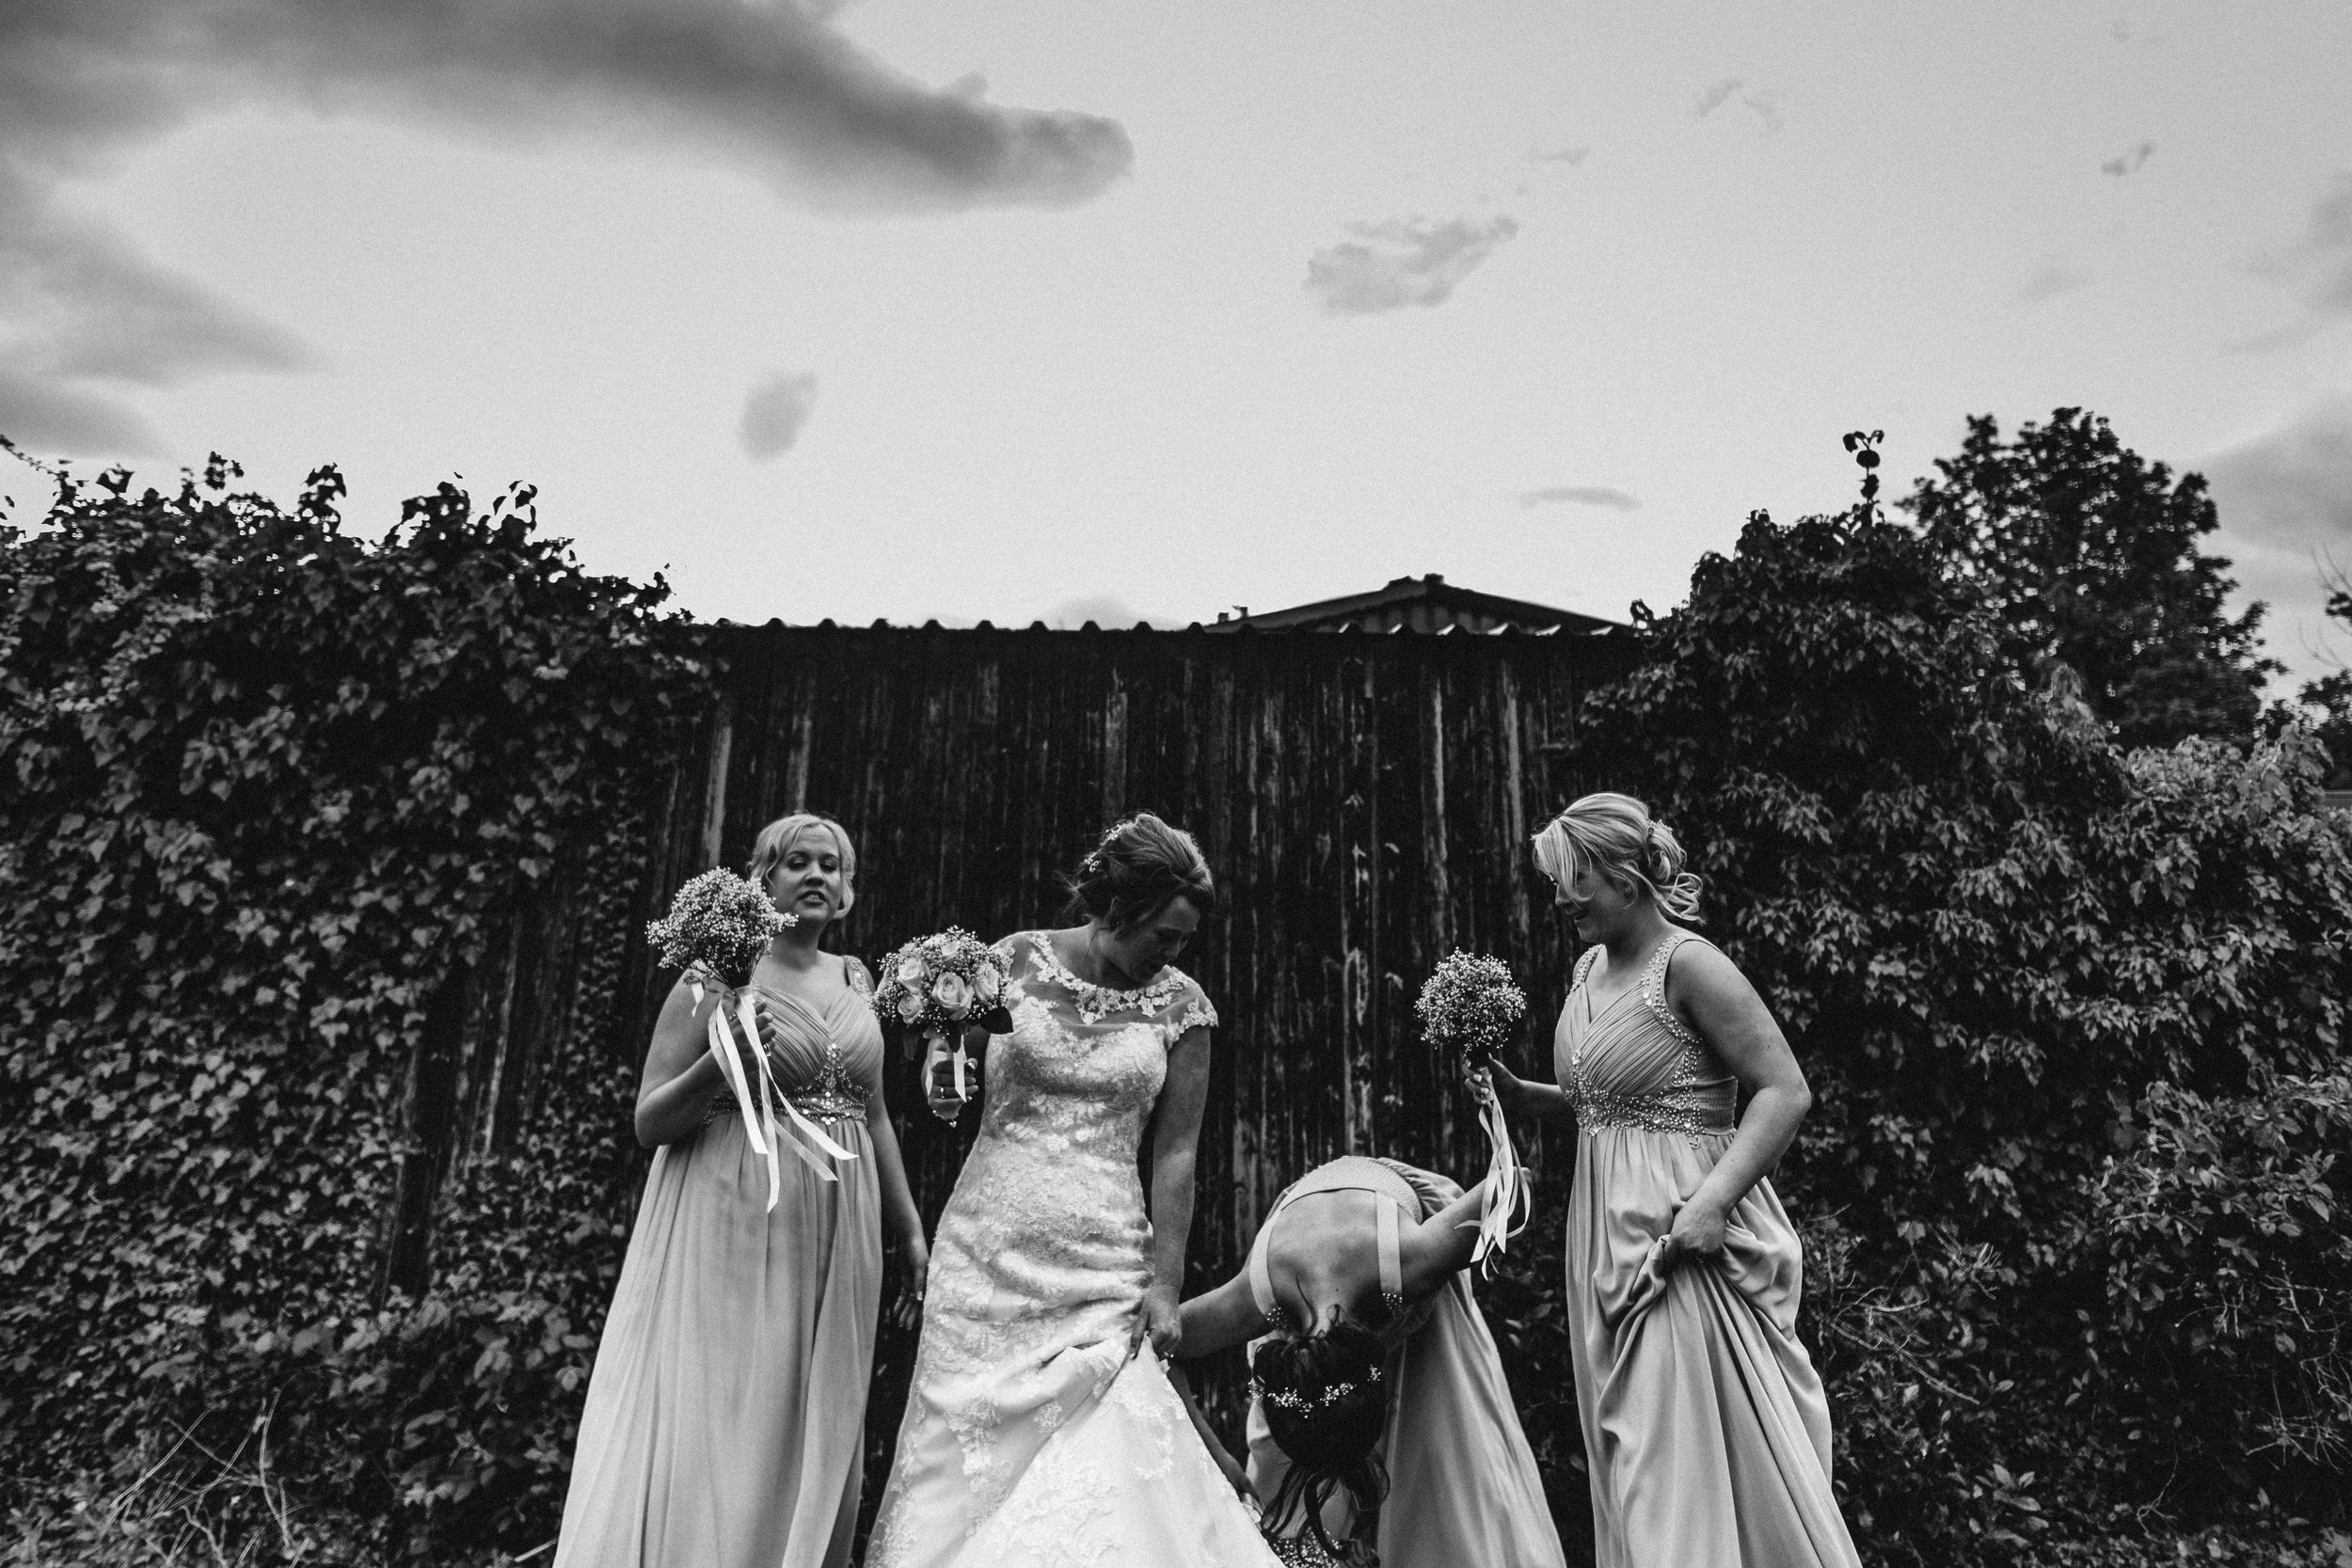 Bridesmaids before the photo